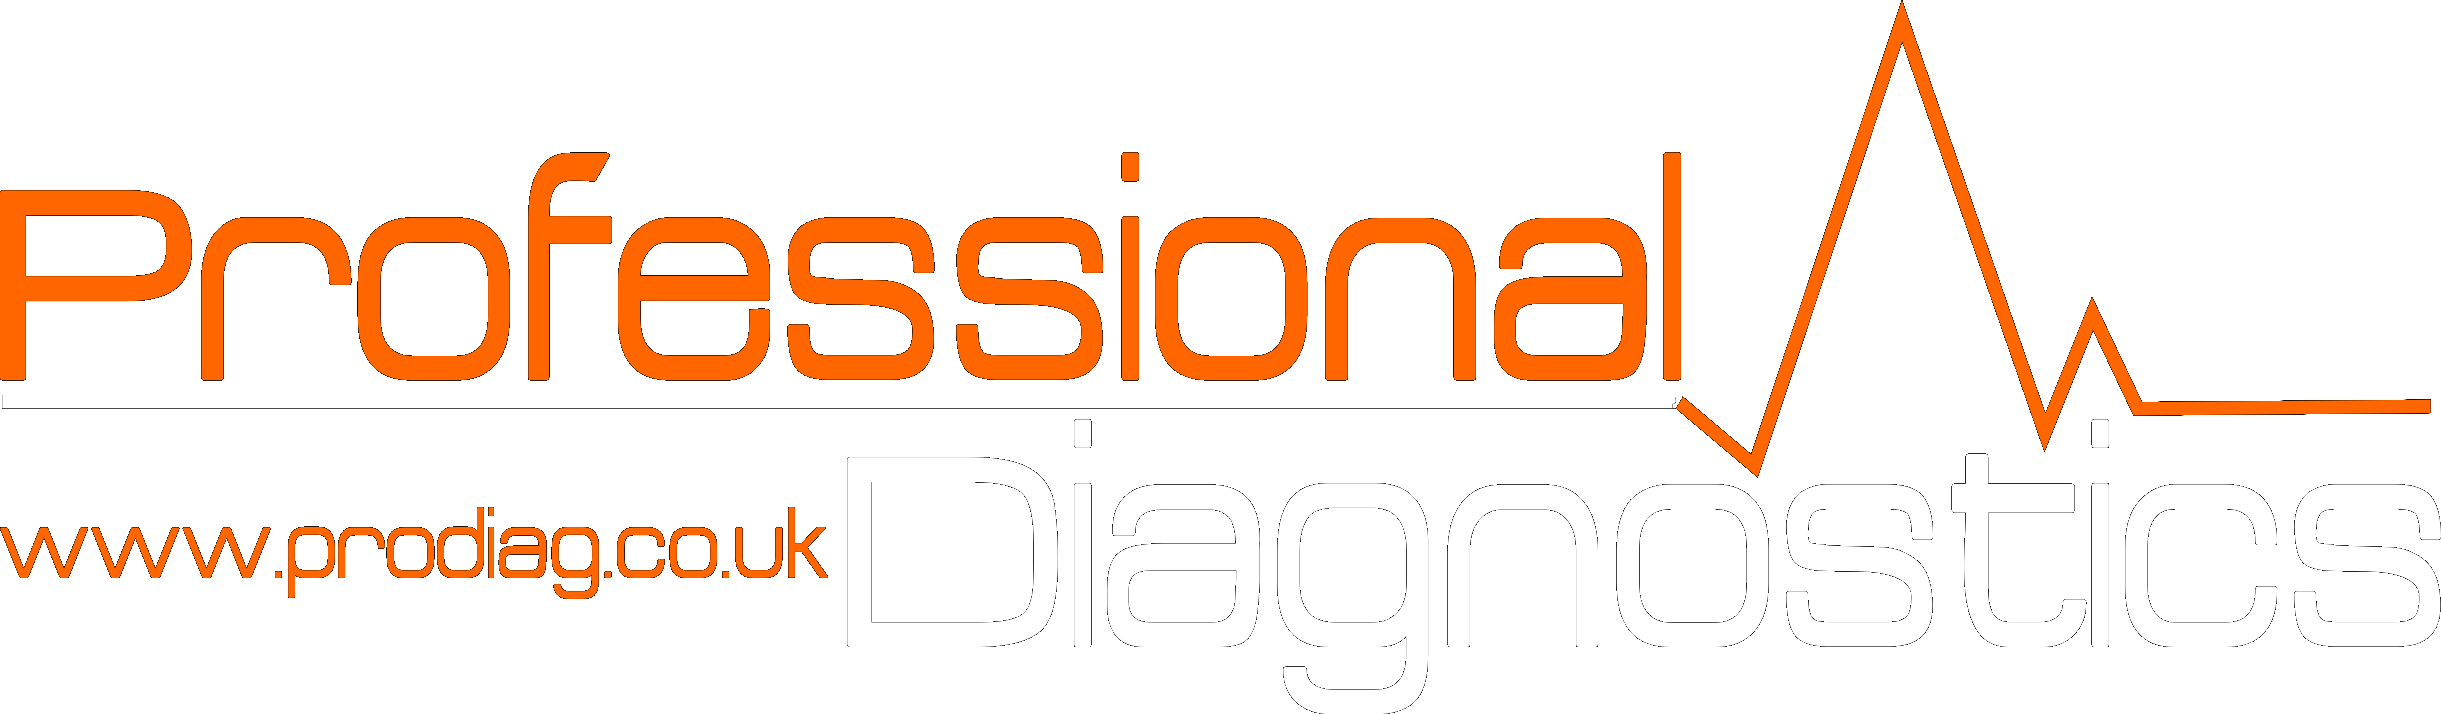 Professional Diagnostics Ltd